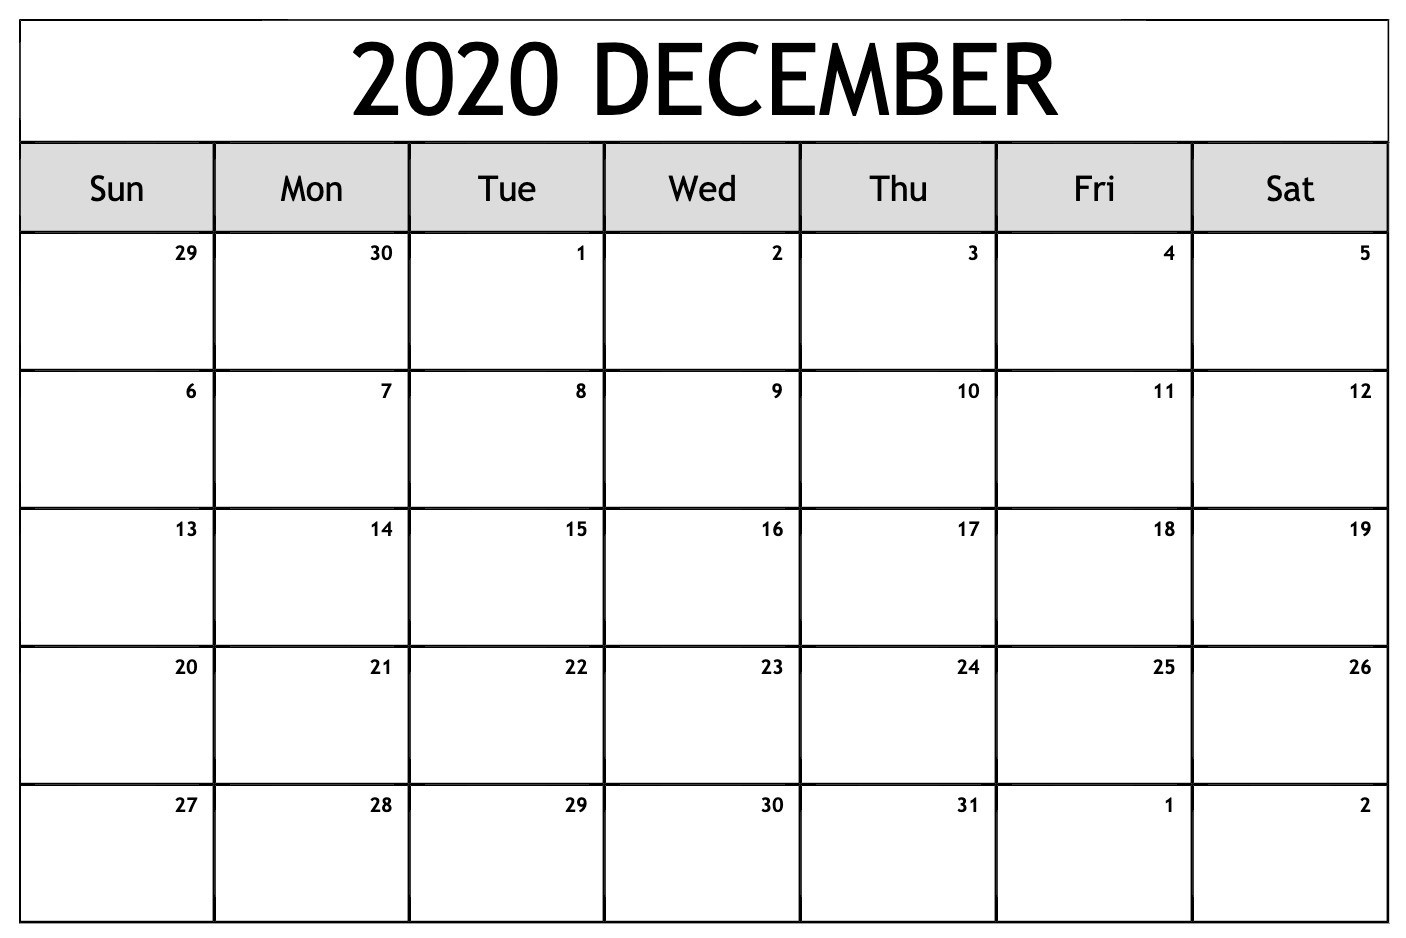 December 2020 Calendar Pdf, Word, Excel Printable Template-January 2020 Calendar In Excel